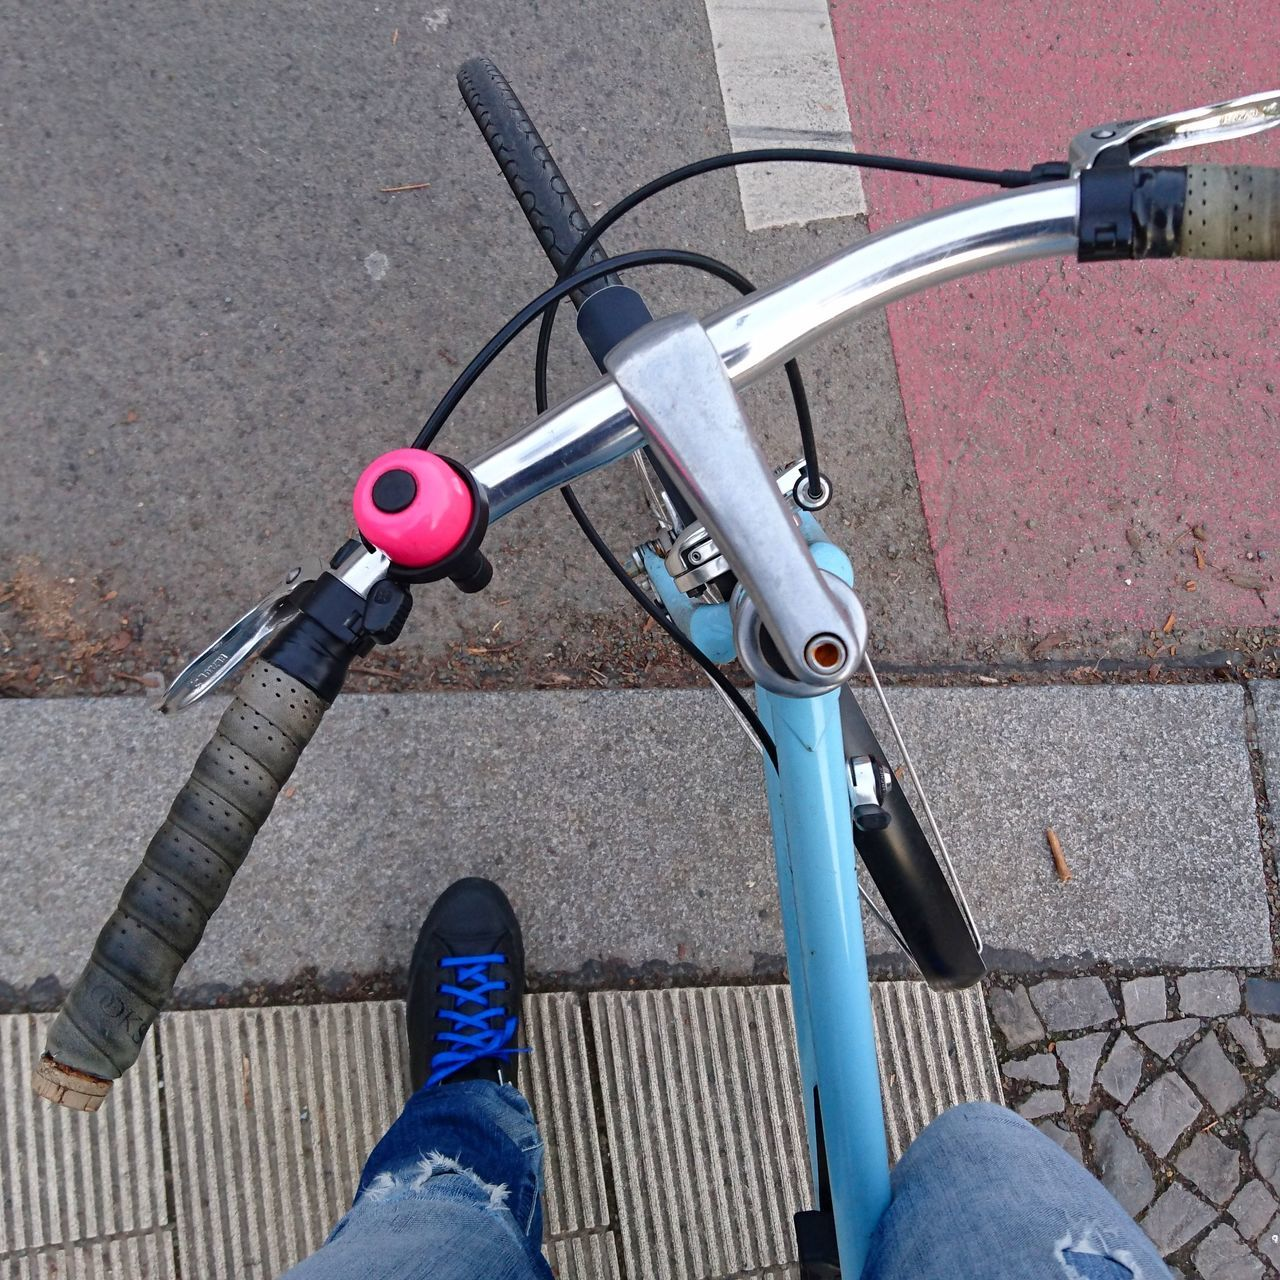 Back on the road again. Outdoors Perspective Bike Biking From My Perspective Frommypointofview From My Polnt Of View